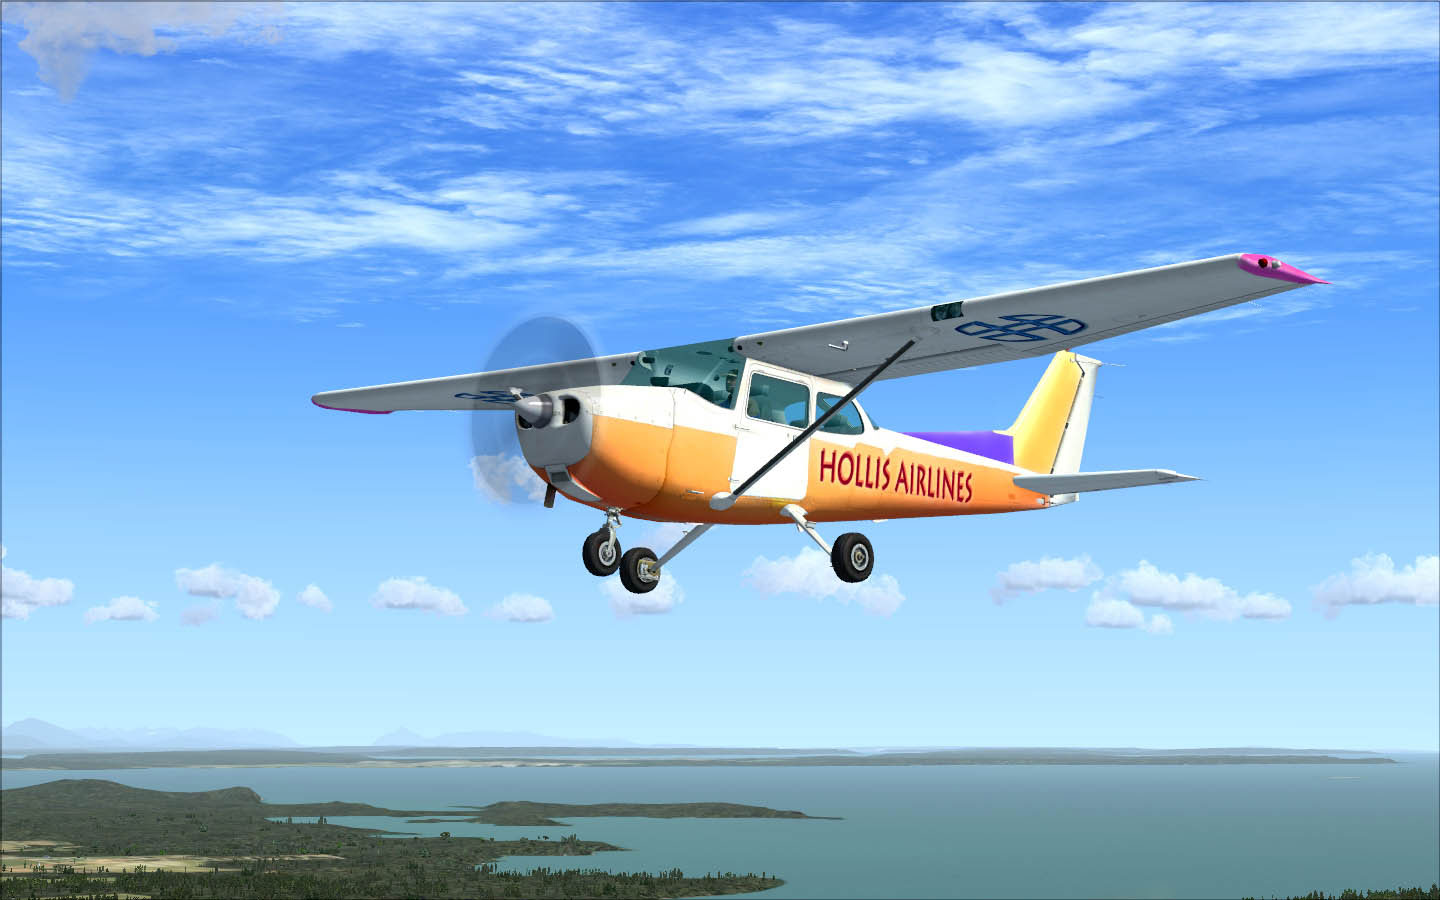 plane simulator games download with Fsx Multicolor Cessna C172 on European Ship Simulator Remastered Free Download in addition Fsx Ups Boeing 767 34af Er furthermore Fsx Multicolor Cessna C172 in addition Willswingscockpit blogspot together with Modern Warplanes Apk Download.